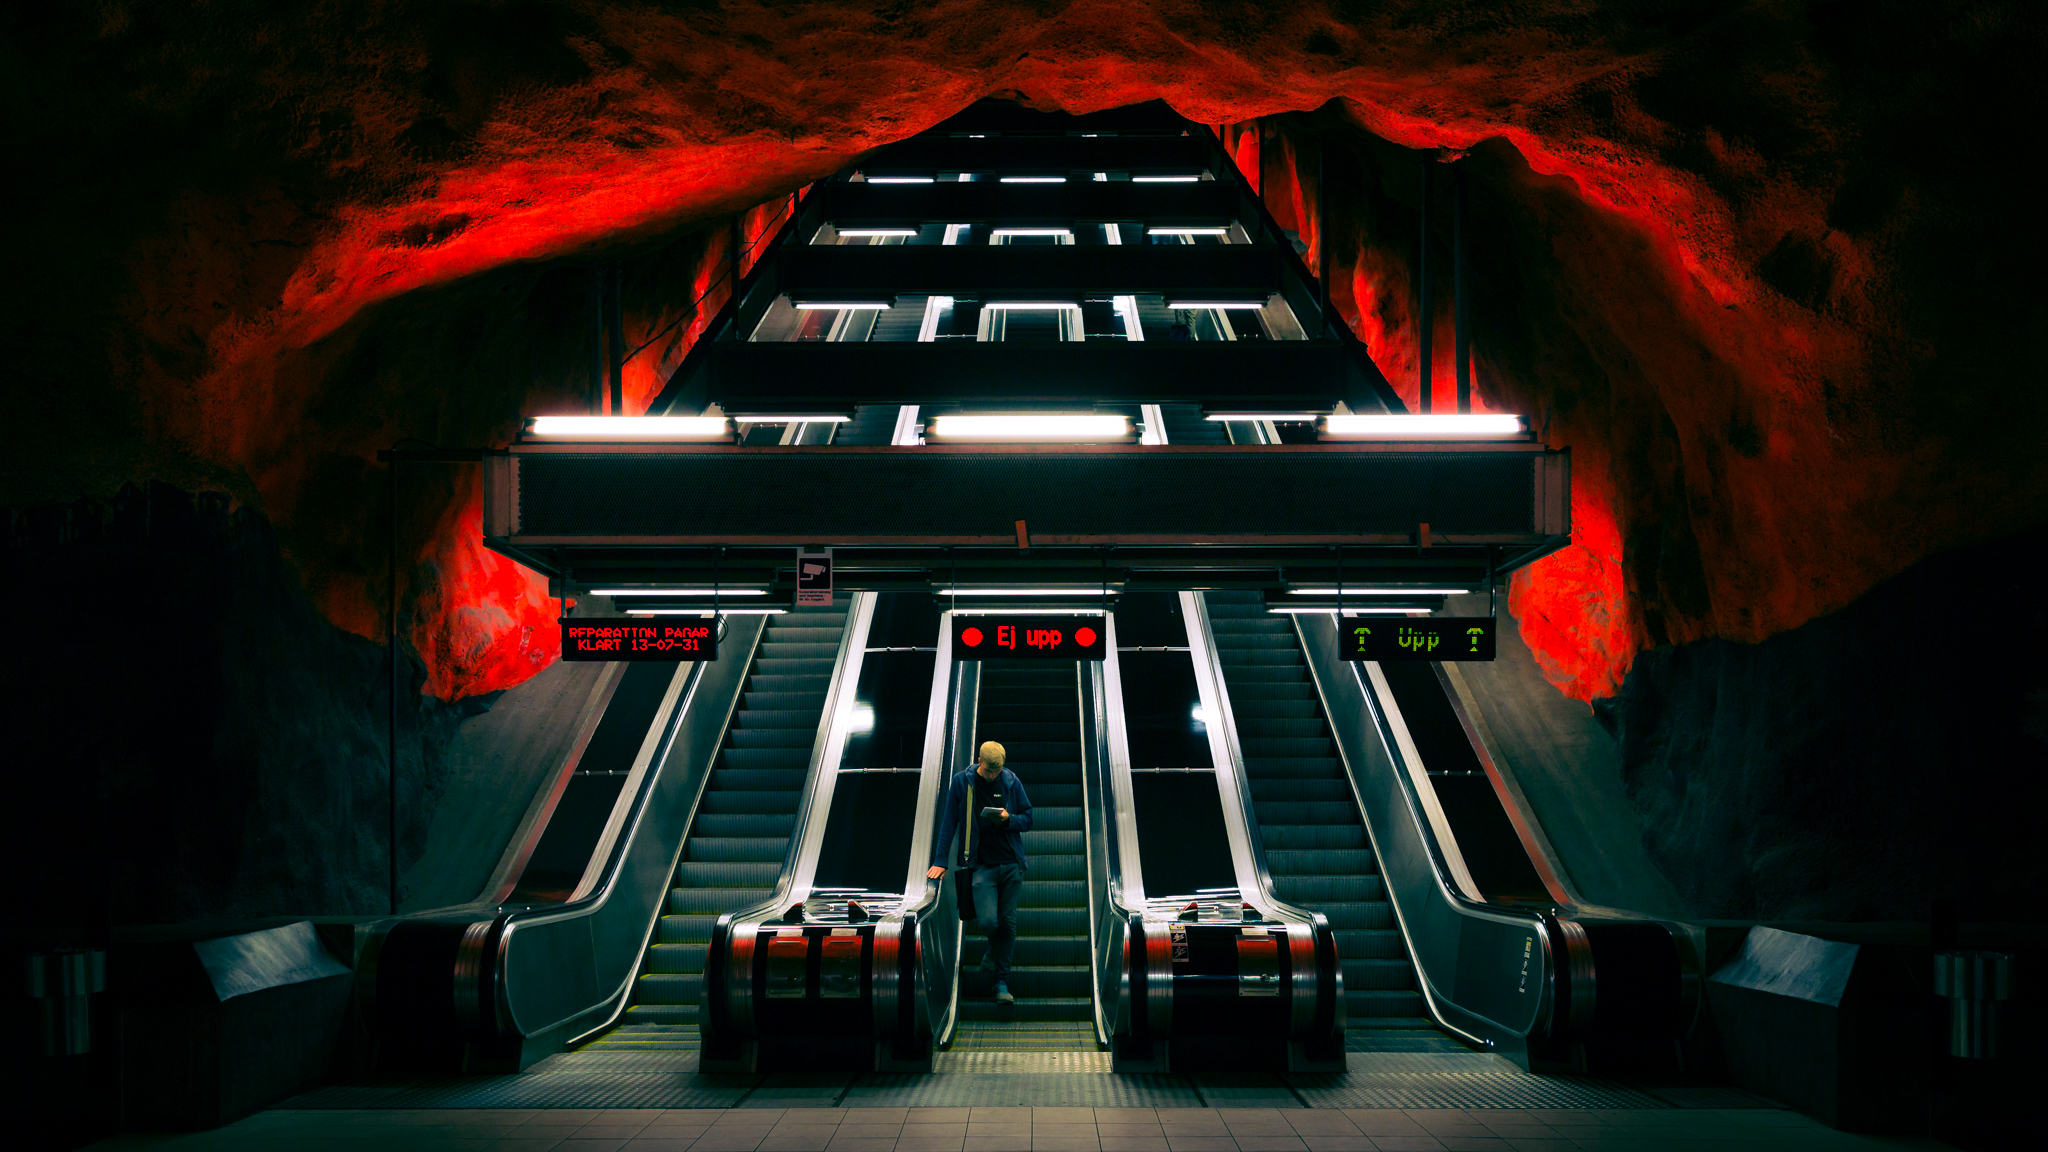 Solna Subway Station, Sweden